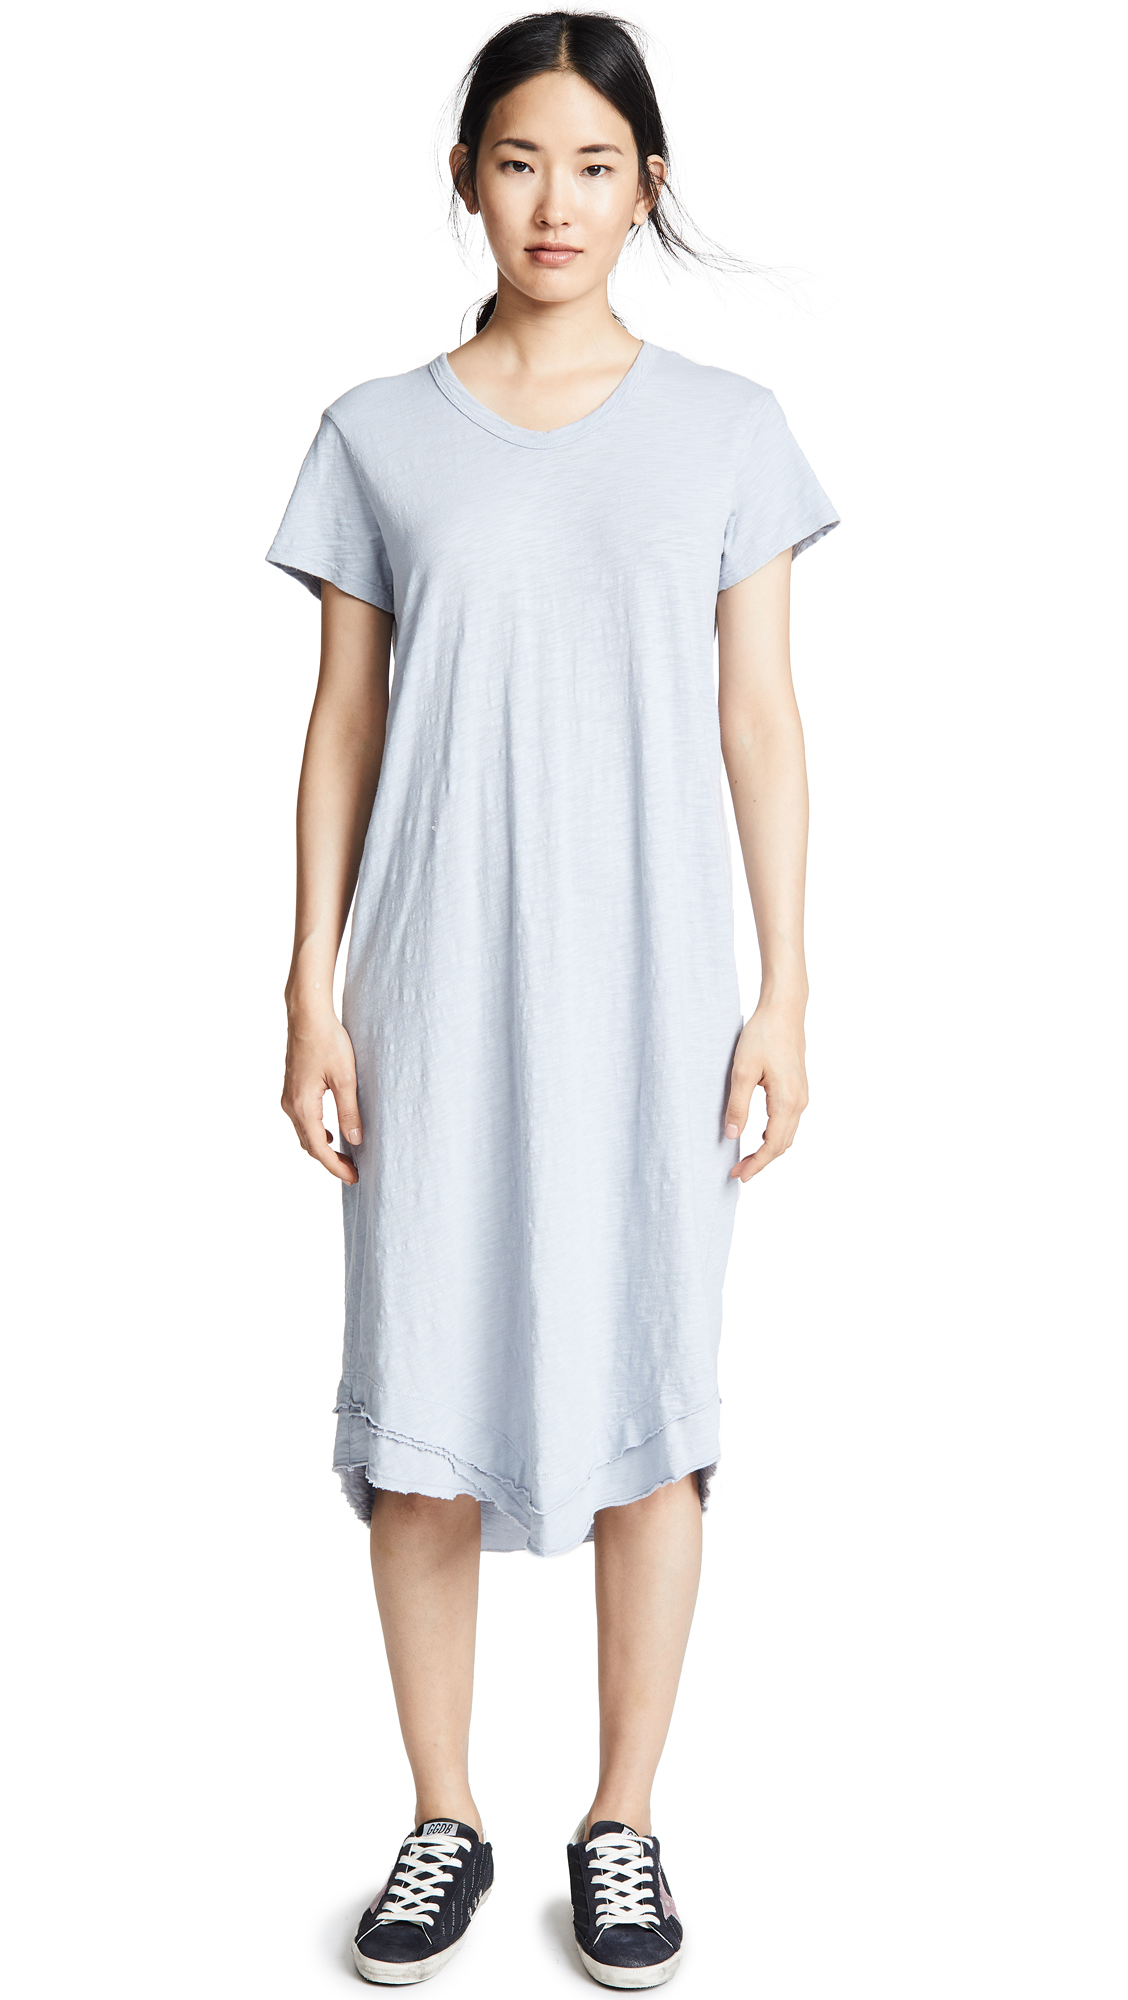 Wilt Crew Tee Dress In Fog